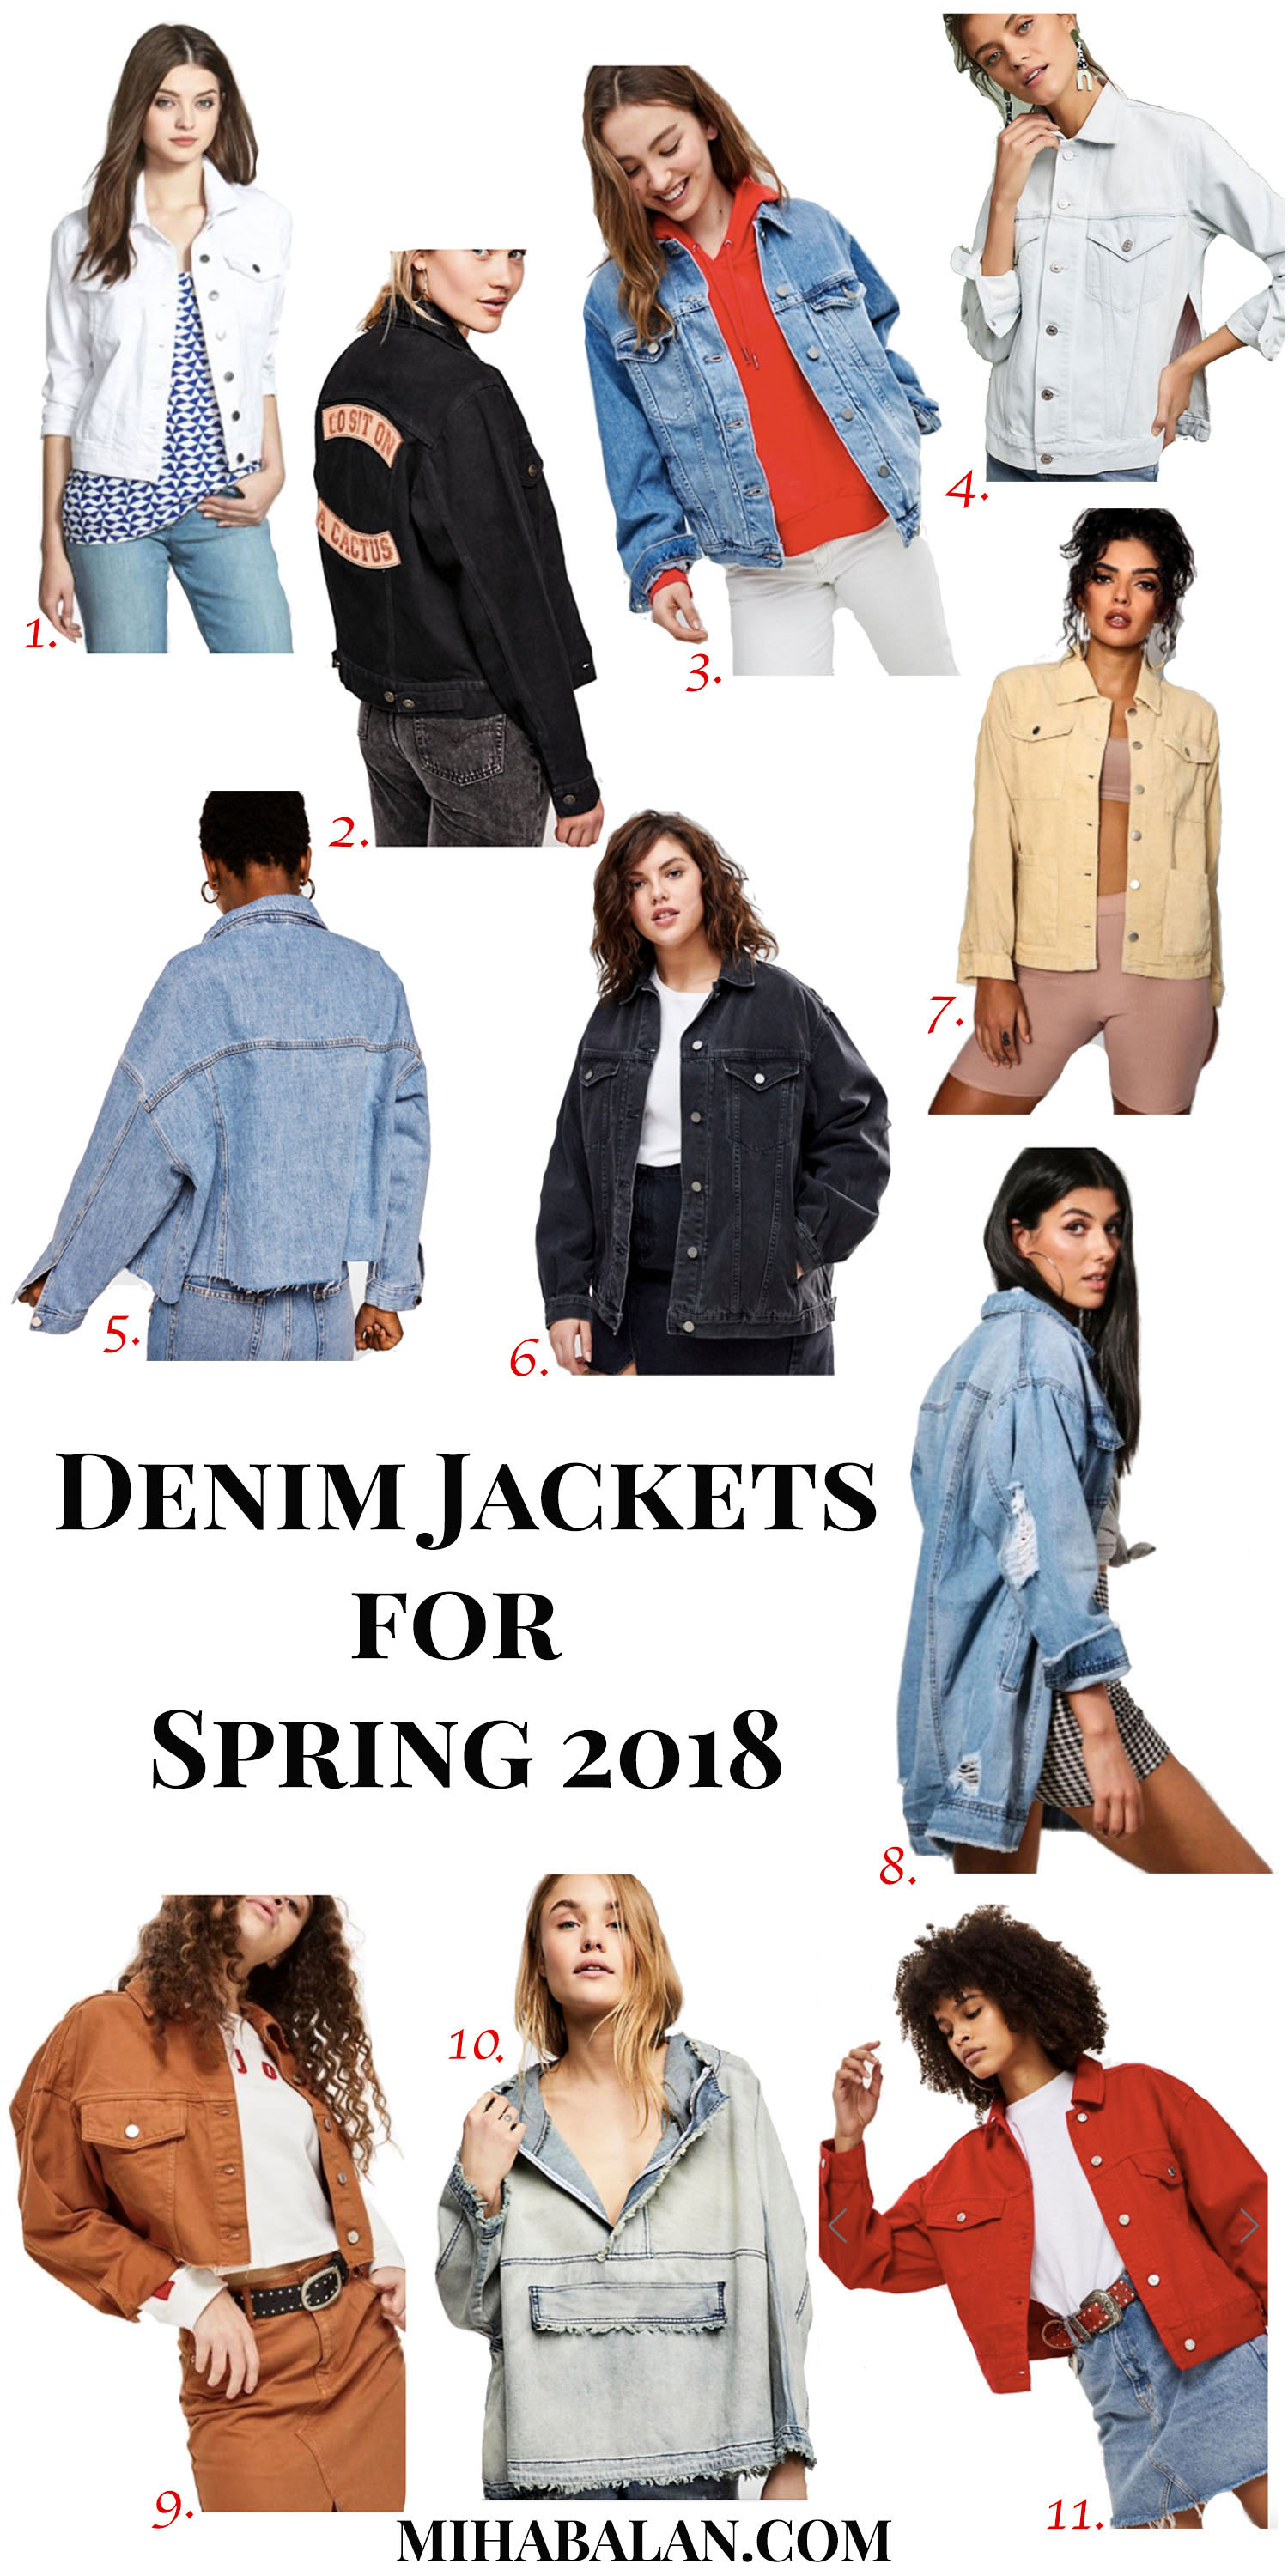 denim jackets for spring 2018